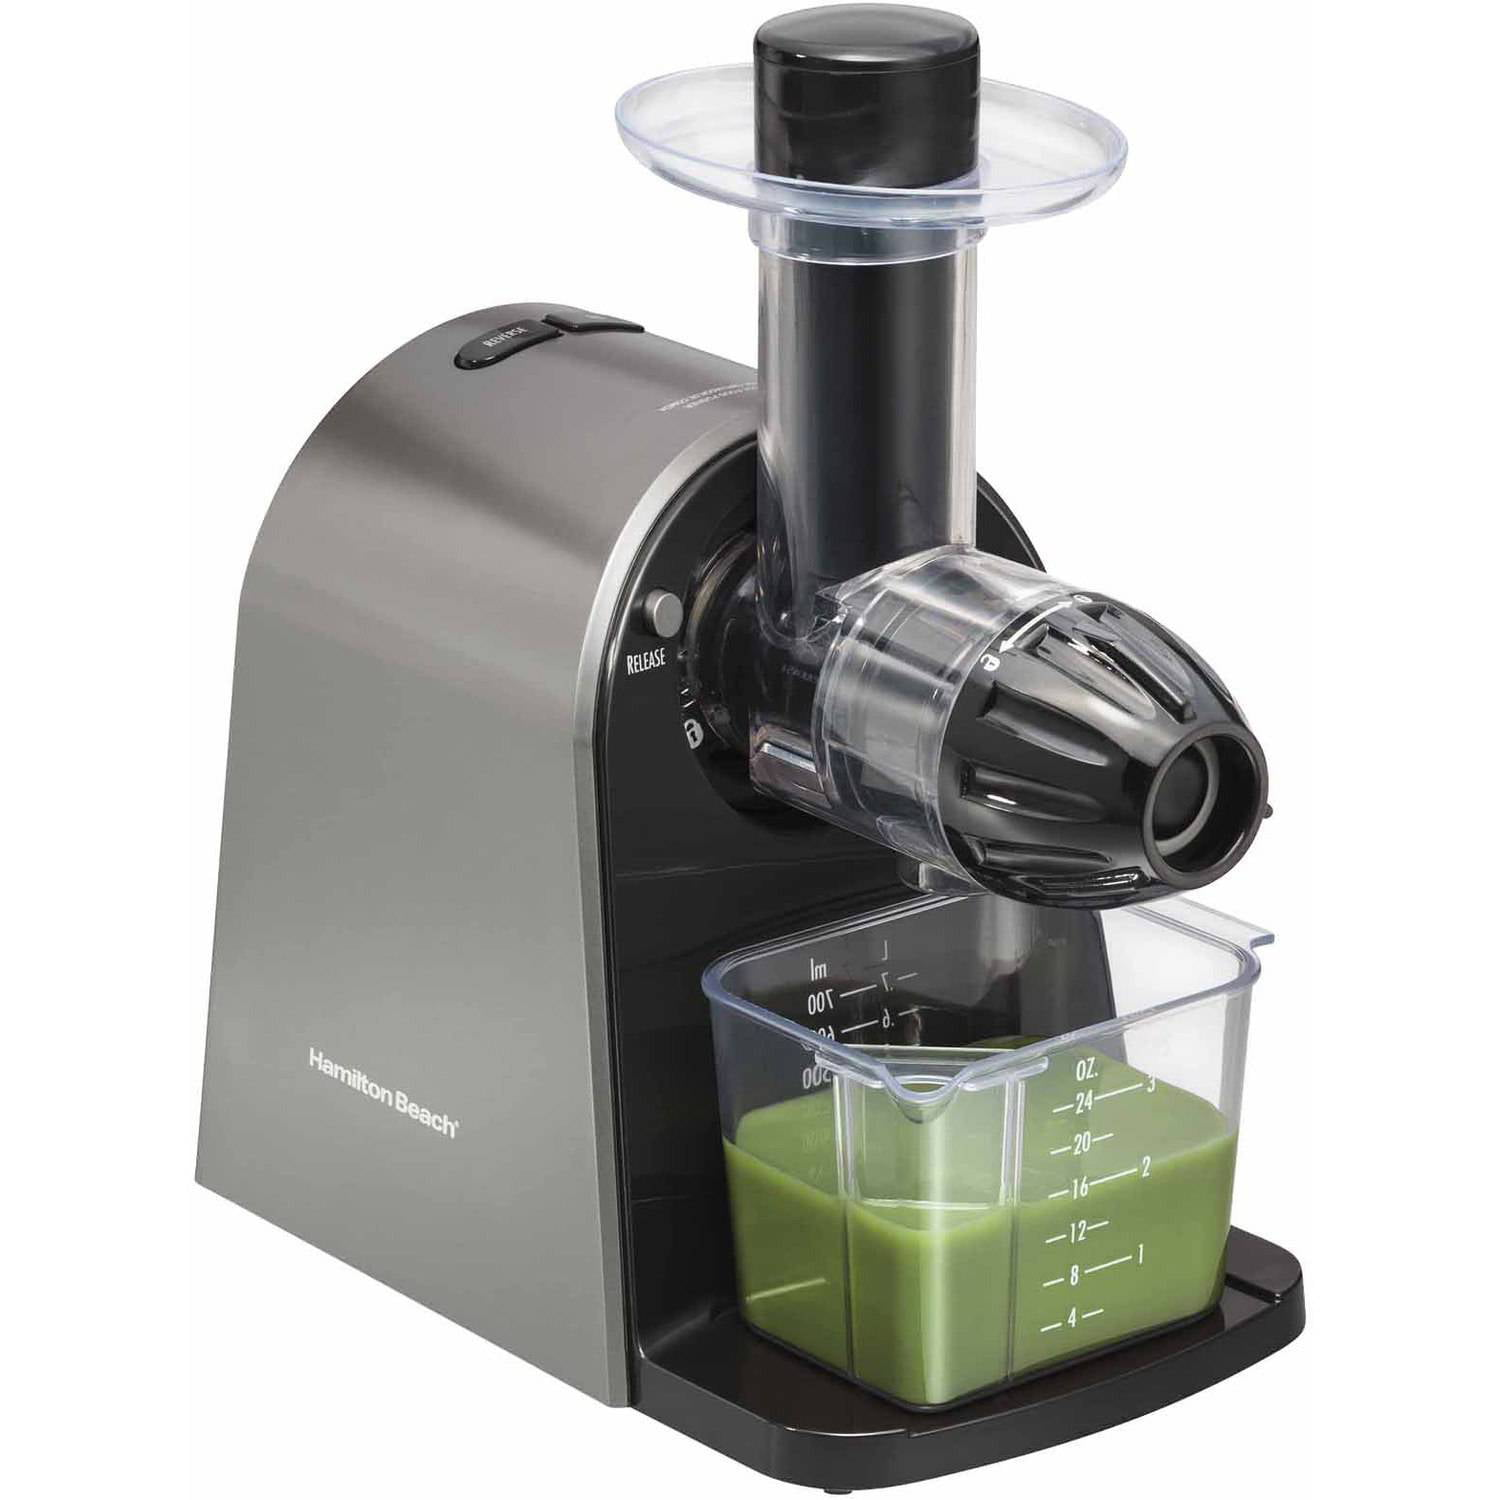 Slow Juicer Manual Terbaik : Cold Press Juicer Machine - Masticating Juicer Slow Juice Extractor Maker Electric Juicing ...